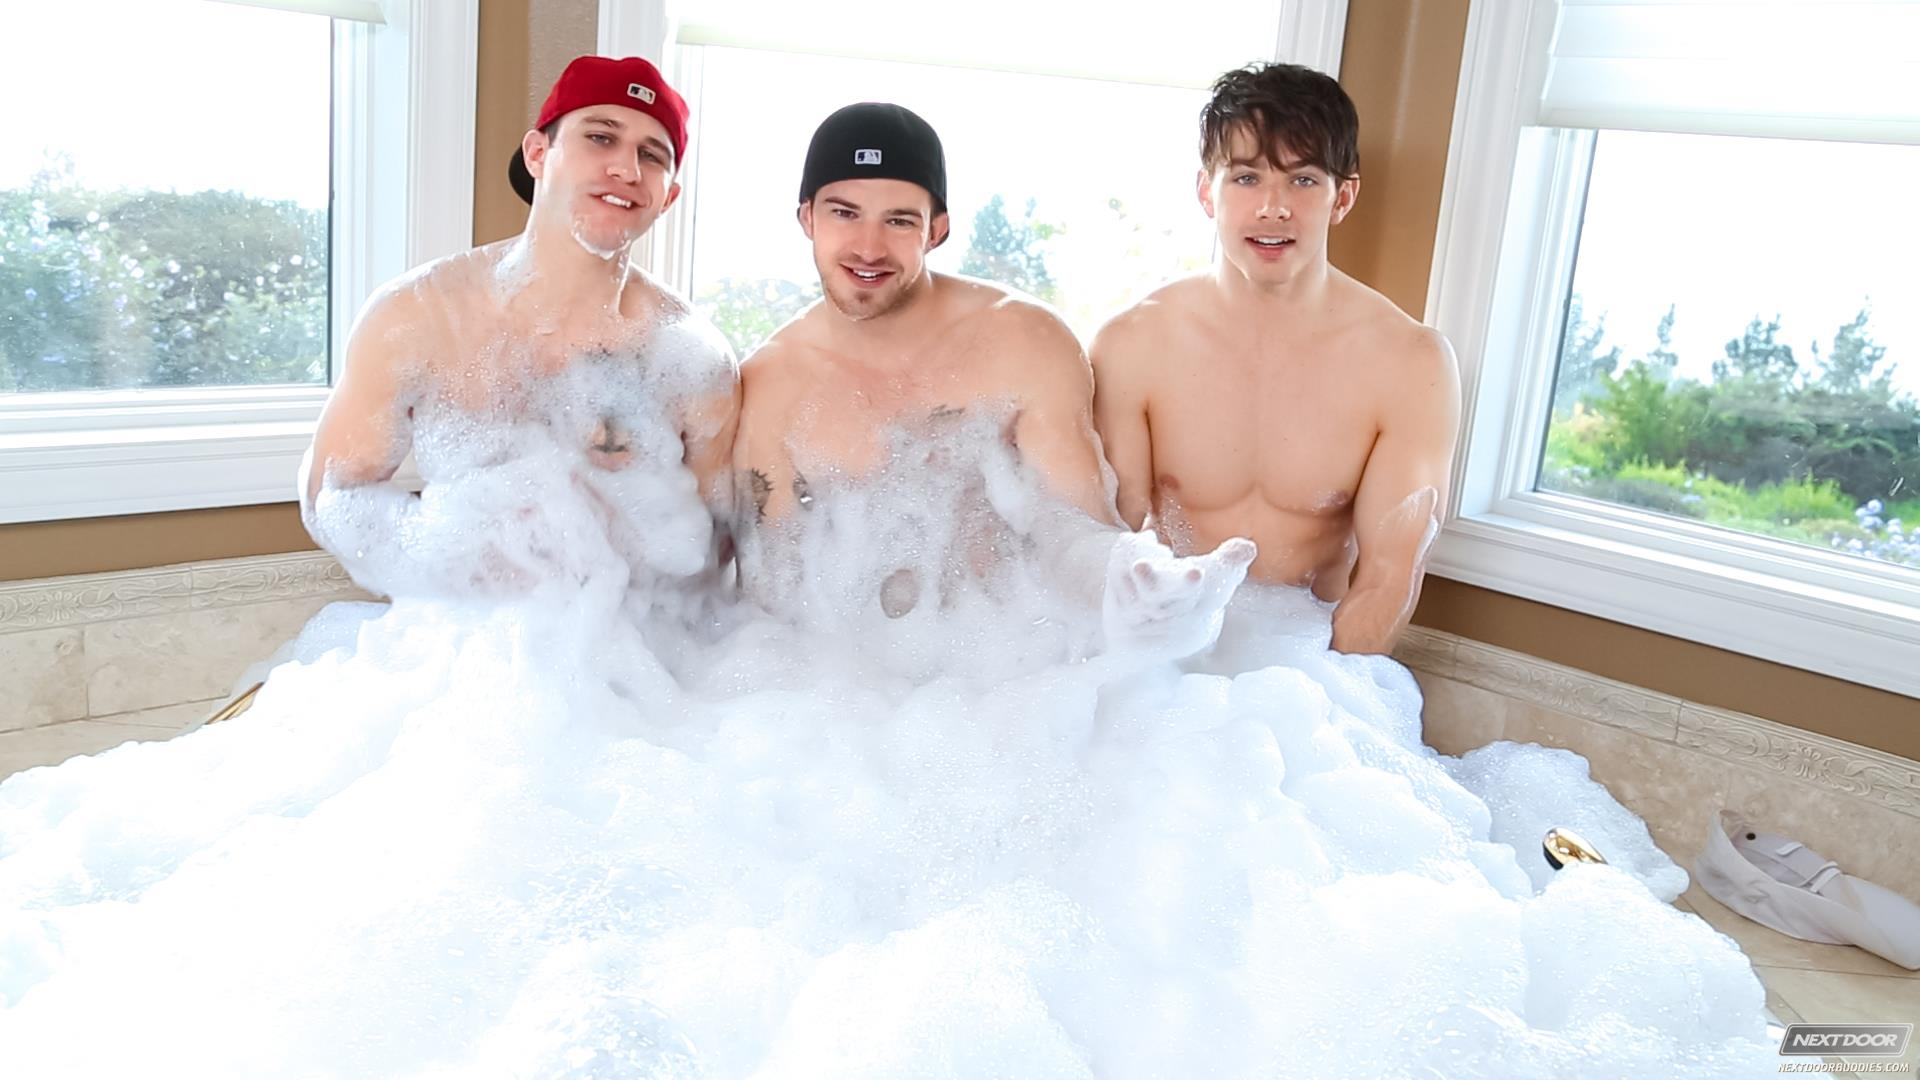 Next-Door-Buddies-Brandon-Bronco-Conner-Hastings-and-Addison-Graham-Big-Cock-Straight-Jocks-Fucking-Amateur-Gay-Porn-01 Hung Drunk Straight Jocks Playing Truth Or Dare Goes All The Way